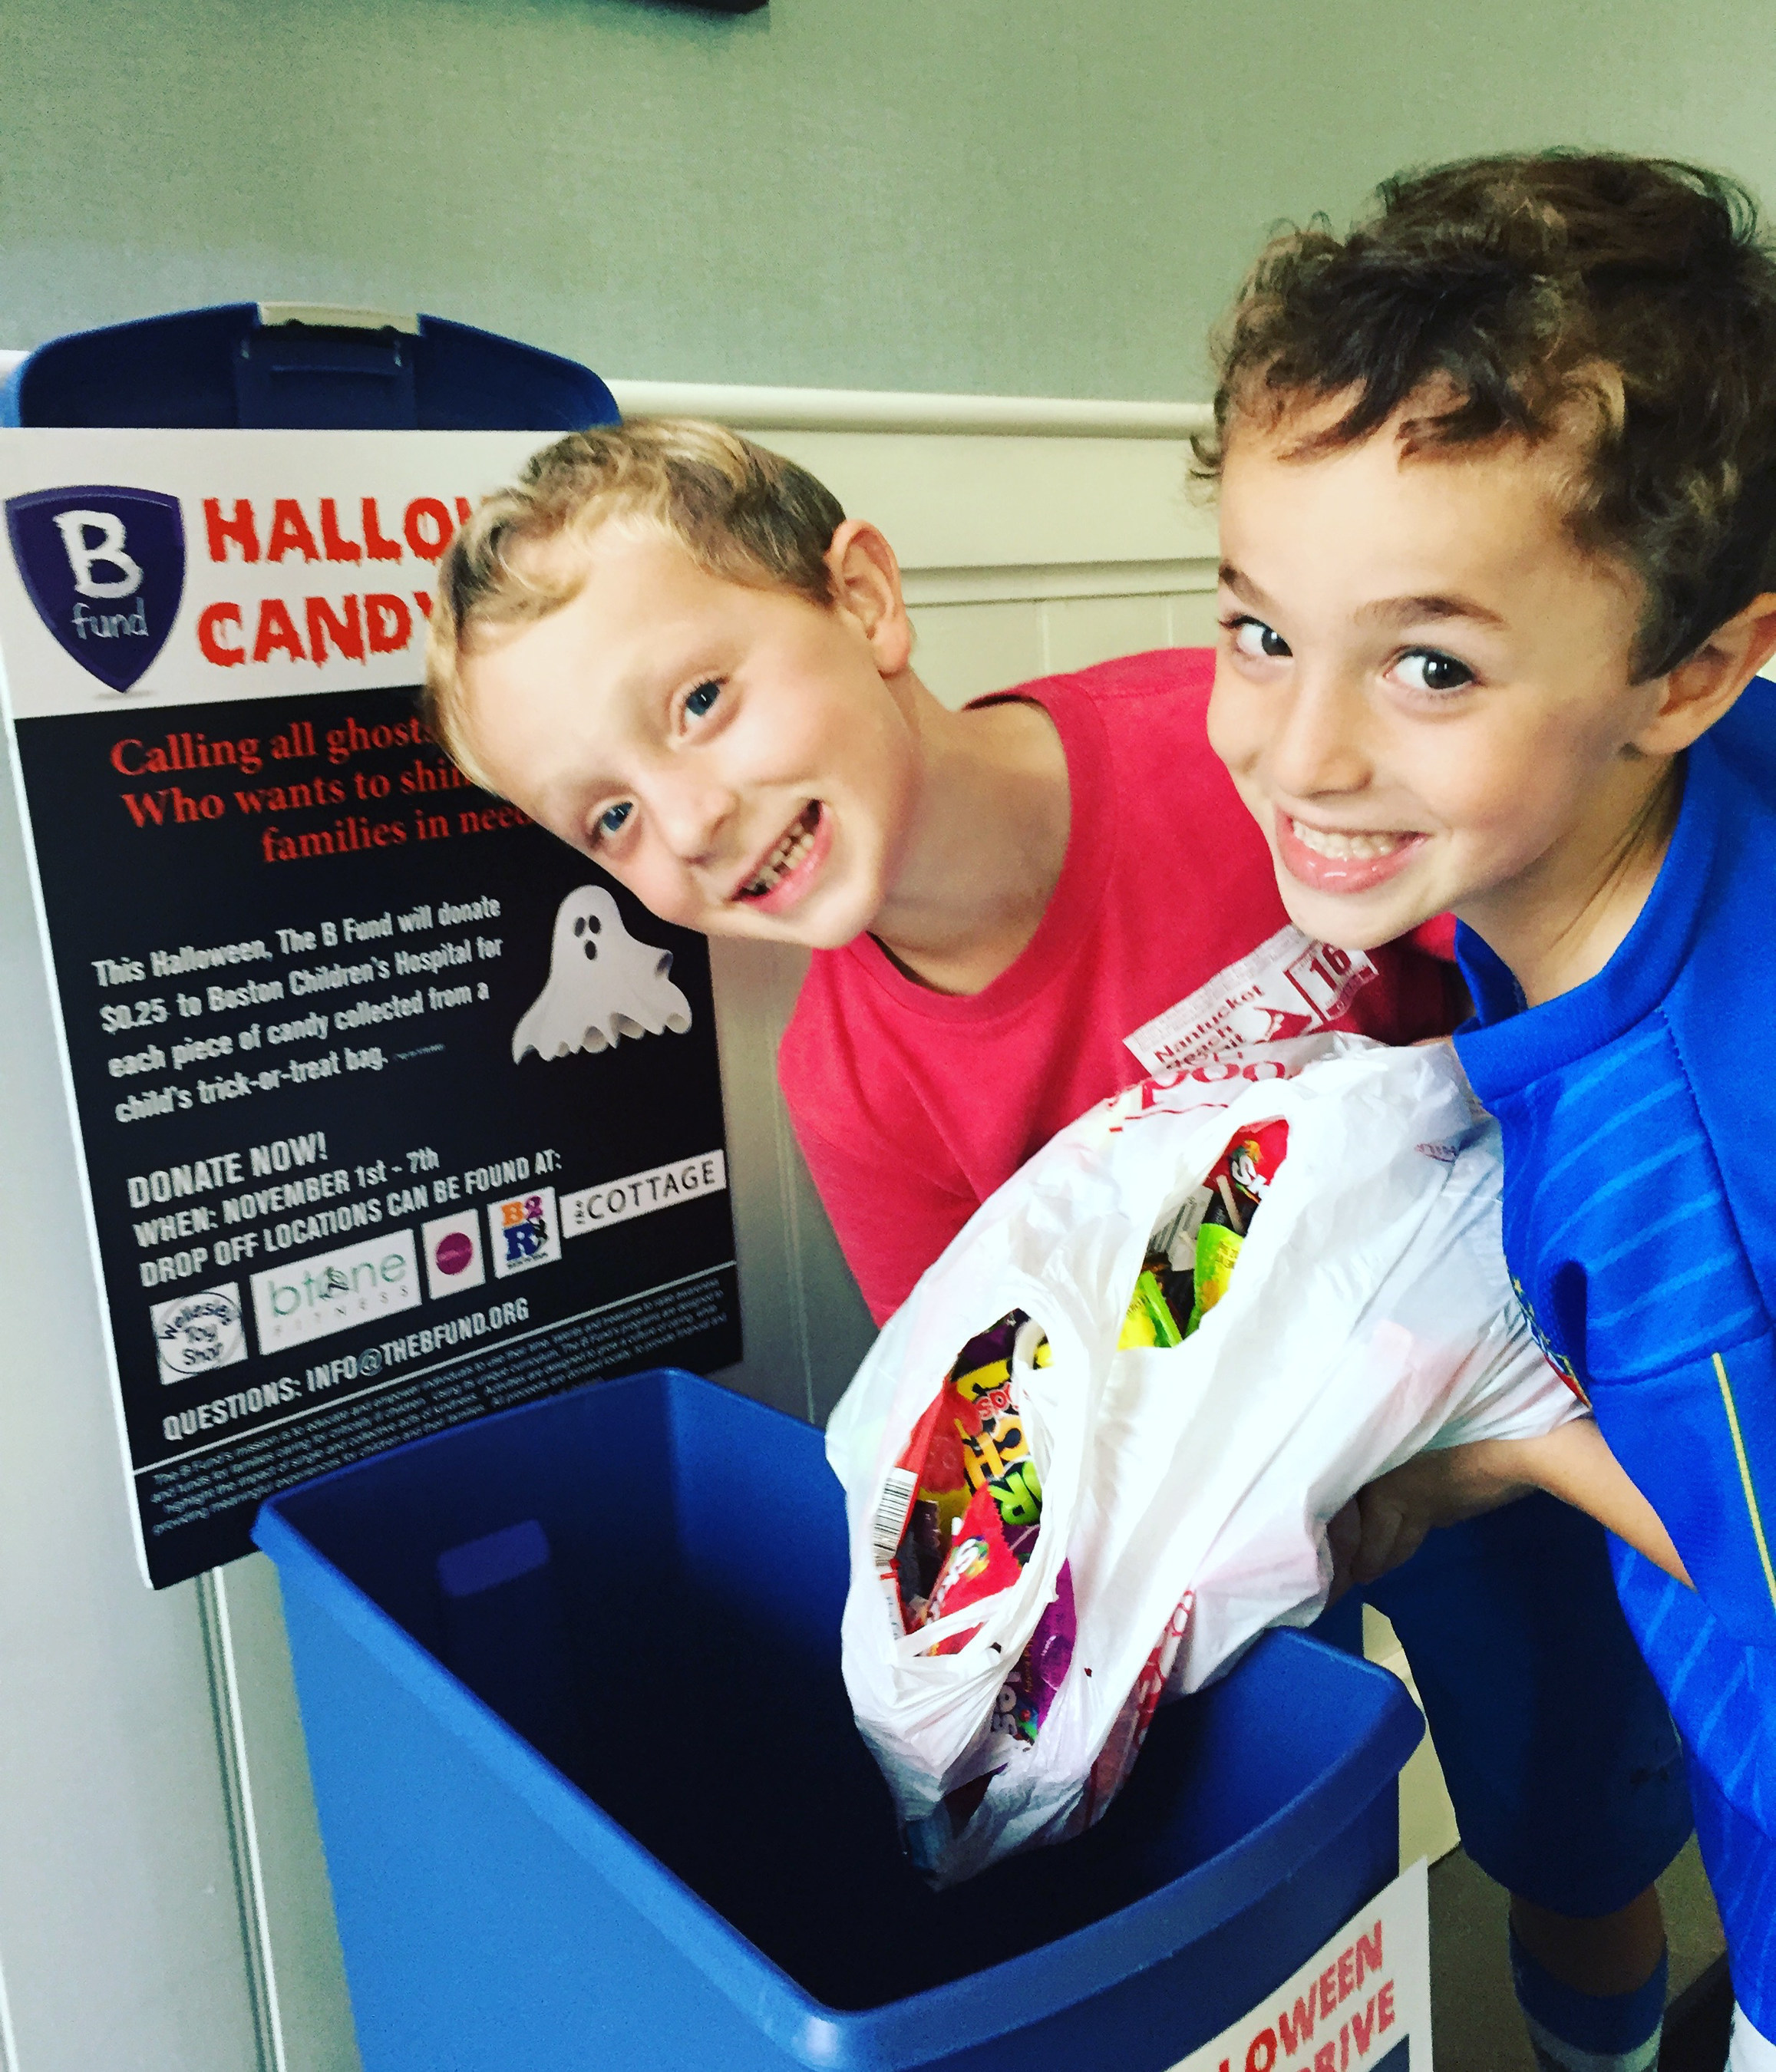 Brothers in Wellesley take a moment to donate their candy at The Cottage Restaurant in Wellesley, MA.